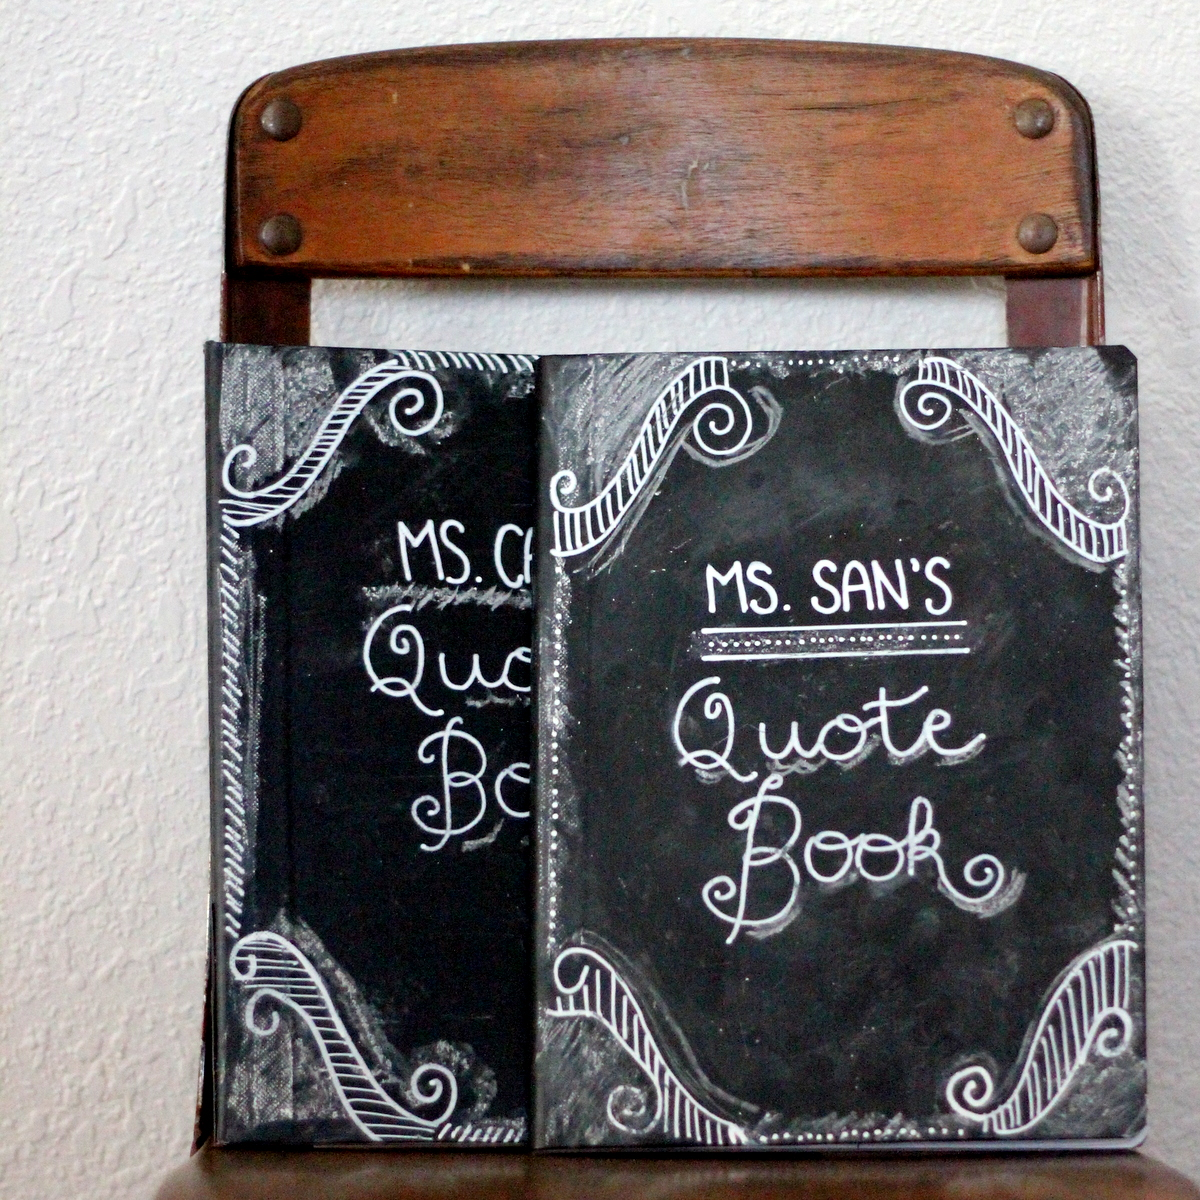 teacher appreciation gift idea chalkboard journal chalkboard designs ideas - Chalkboard Designs Ideas